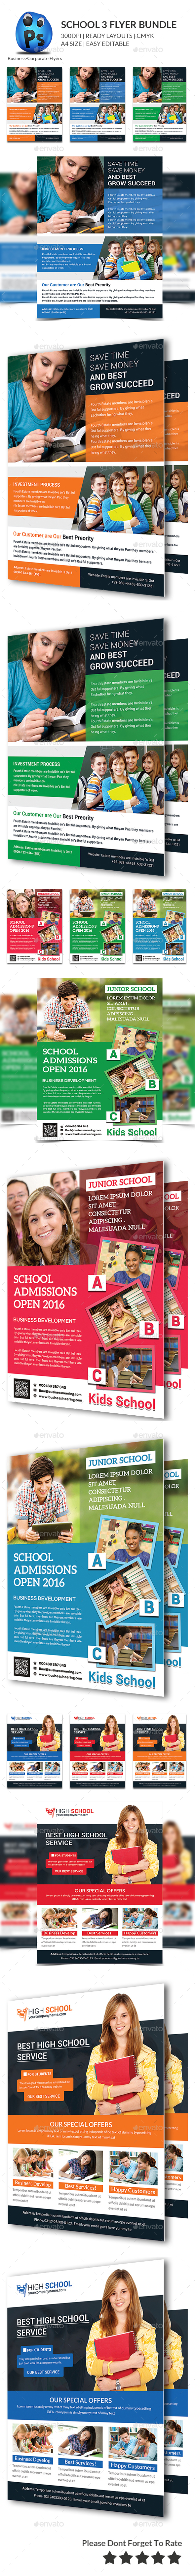 School Education Flyer Bundle - Corporate Flyers